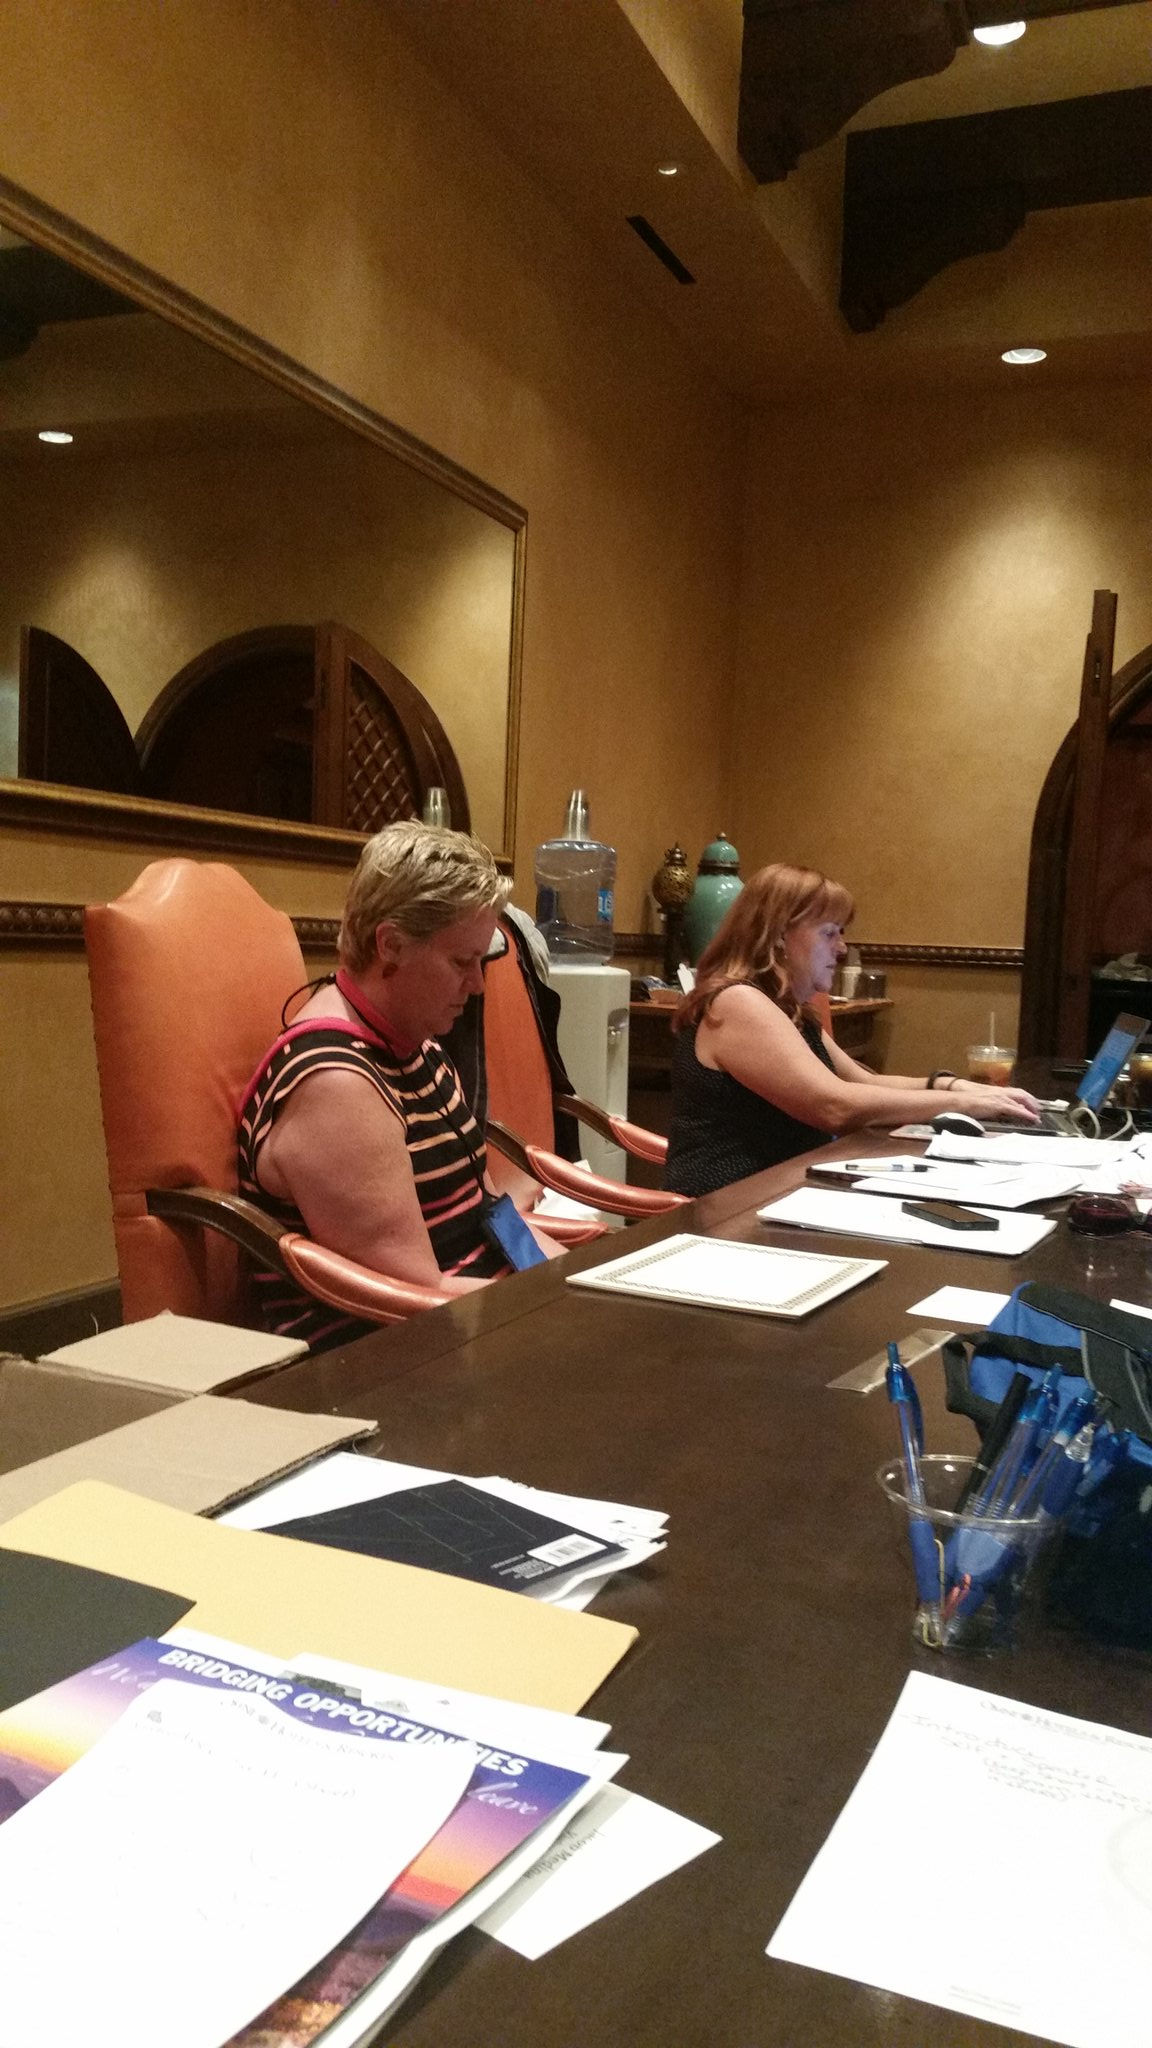 Rosemary and Sandy working hard on the AAAED conference in Scottsdale https://t.co/bNg5lKMcRY https://t.co/6iQWp9l1ZY